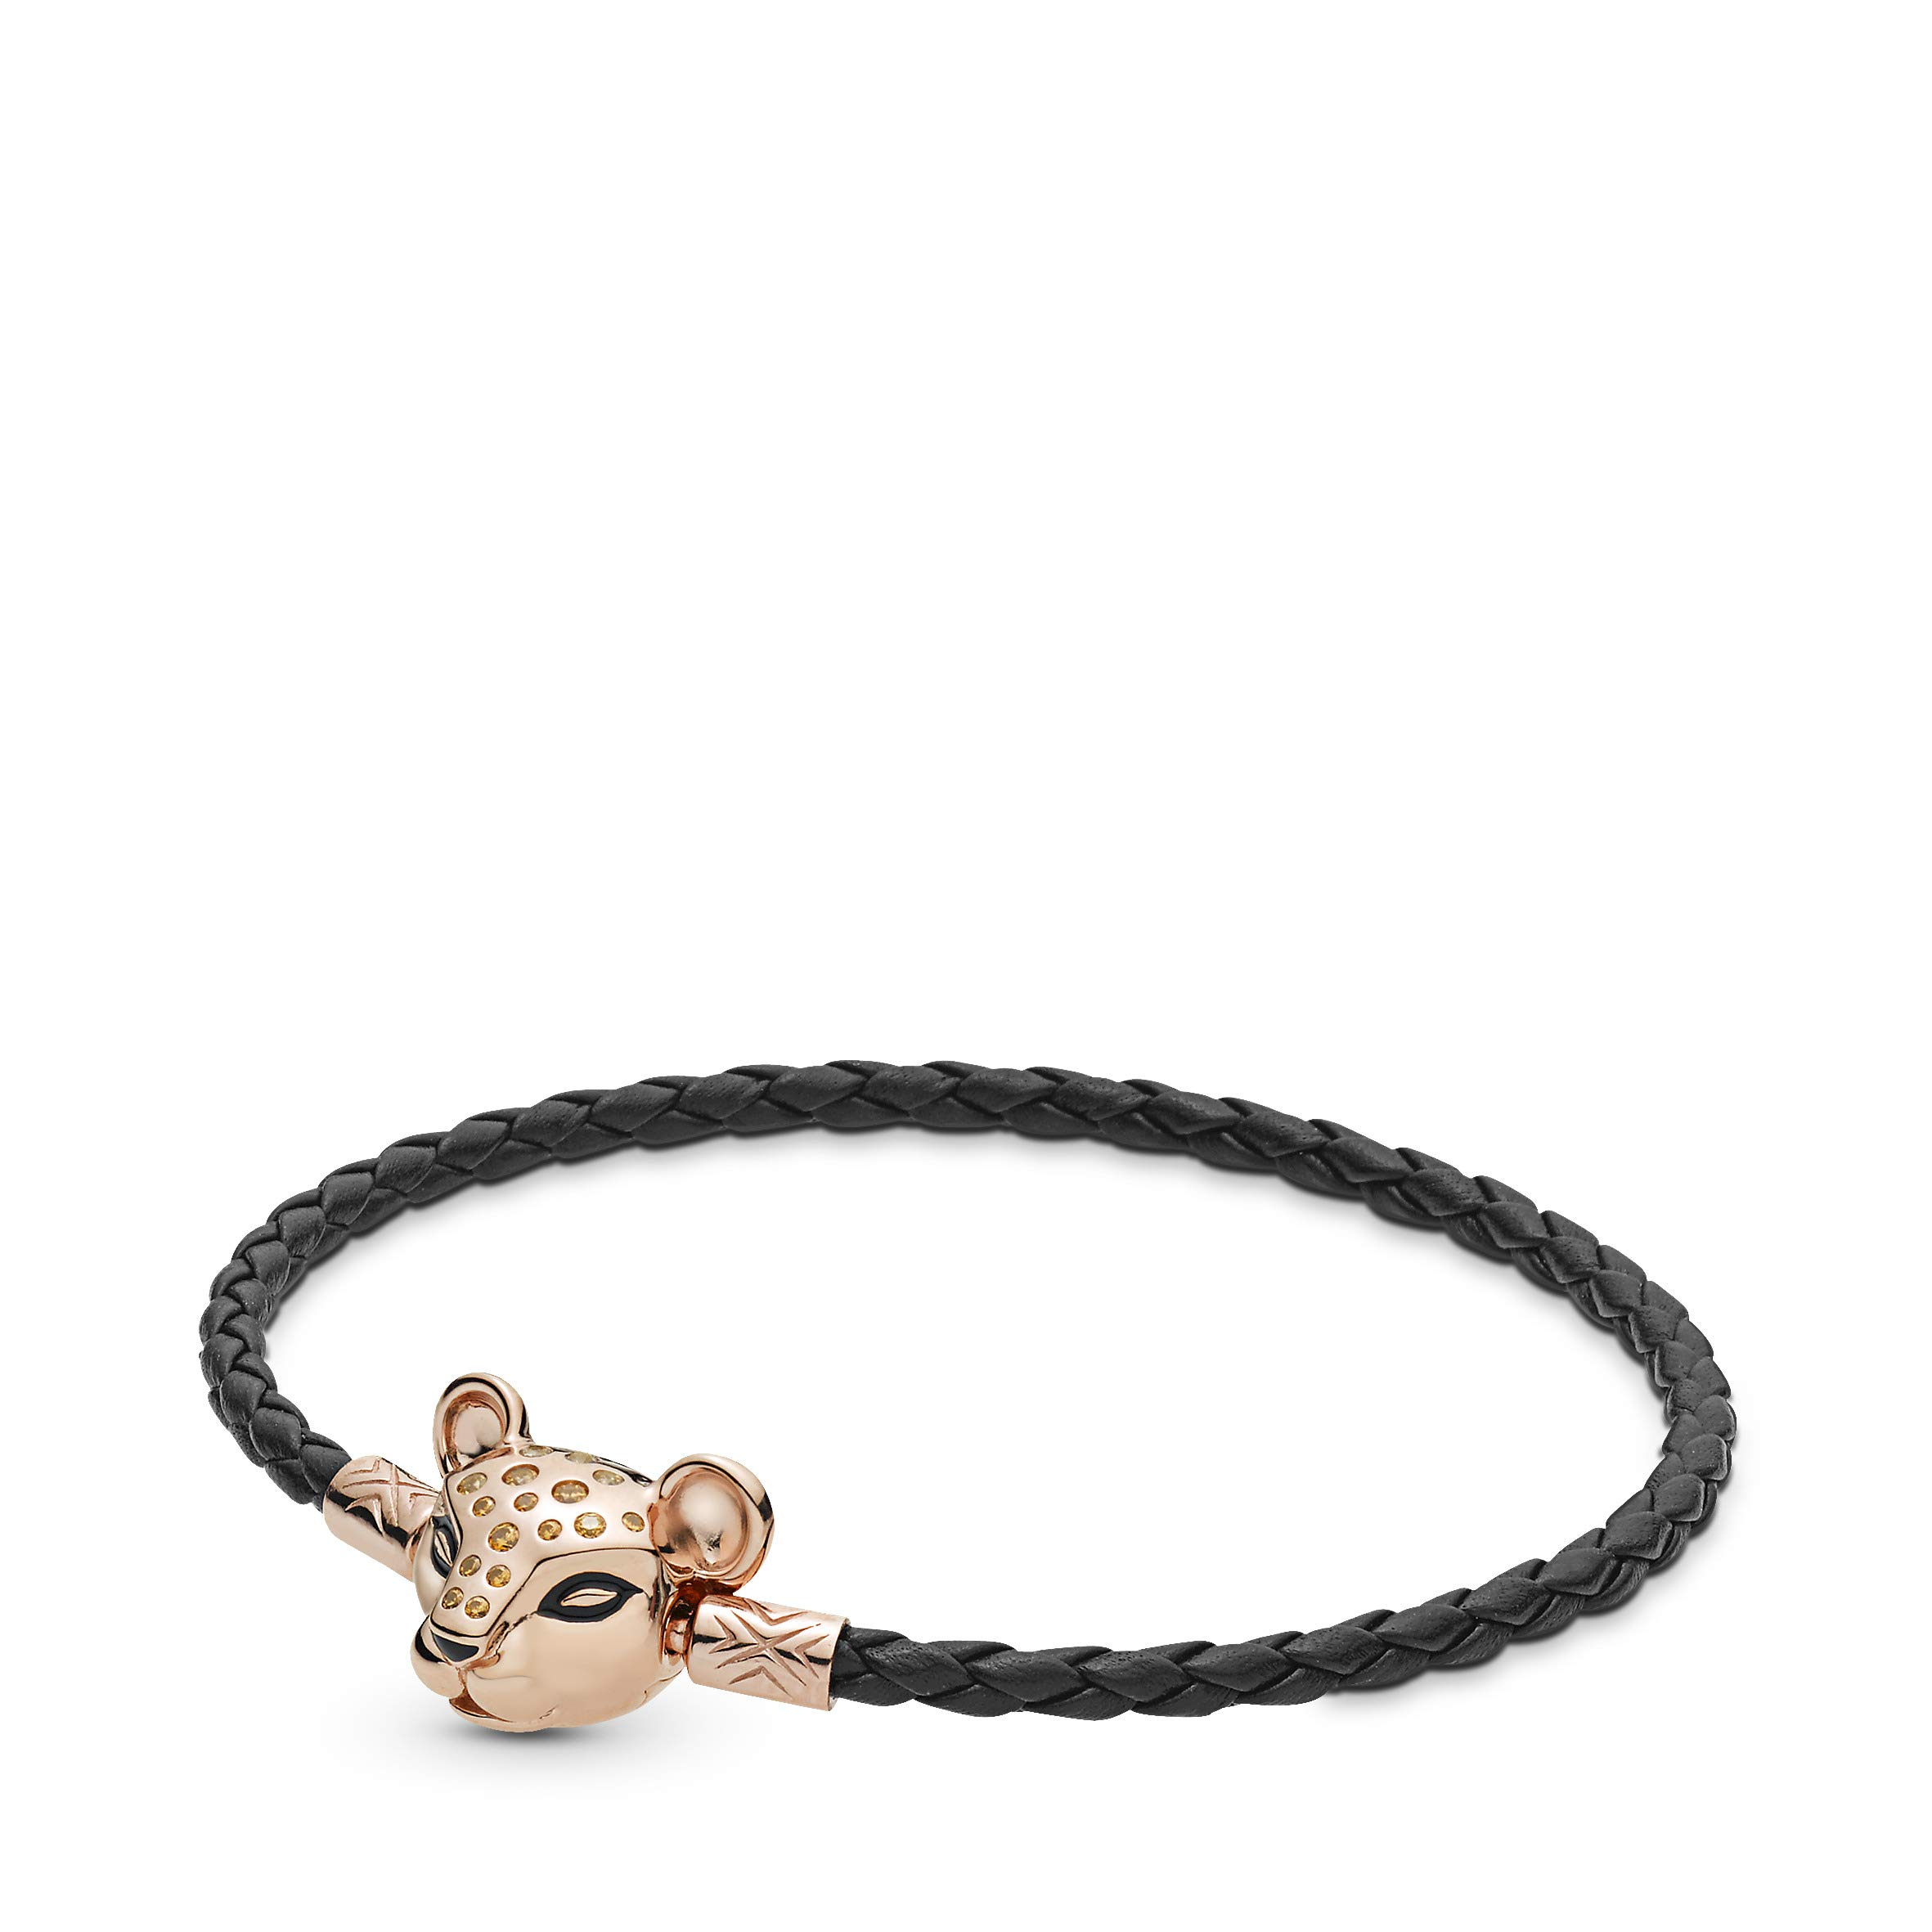 PANDORA Moments Woven Leather Bracelet with Black and Sparkling Lion Princess Clasp PANDORA Rose, Size: 19cm, 7.5 inches - 588053CBK-S2 by PANDORA